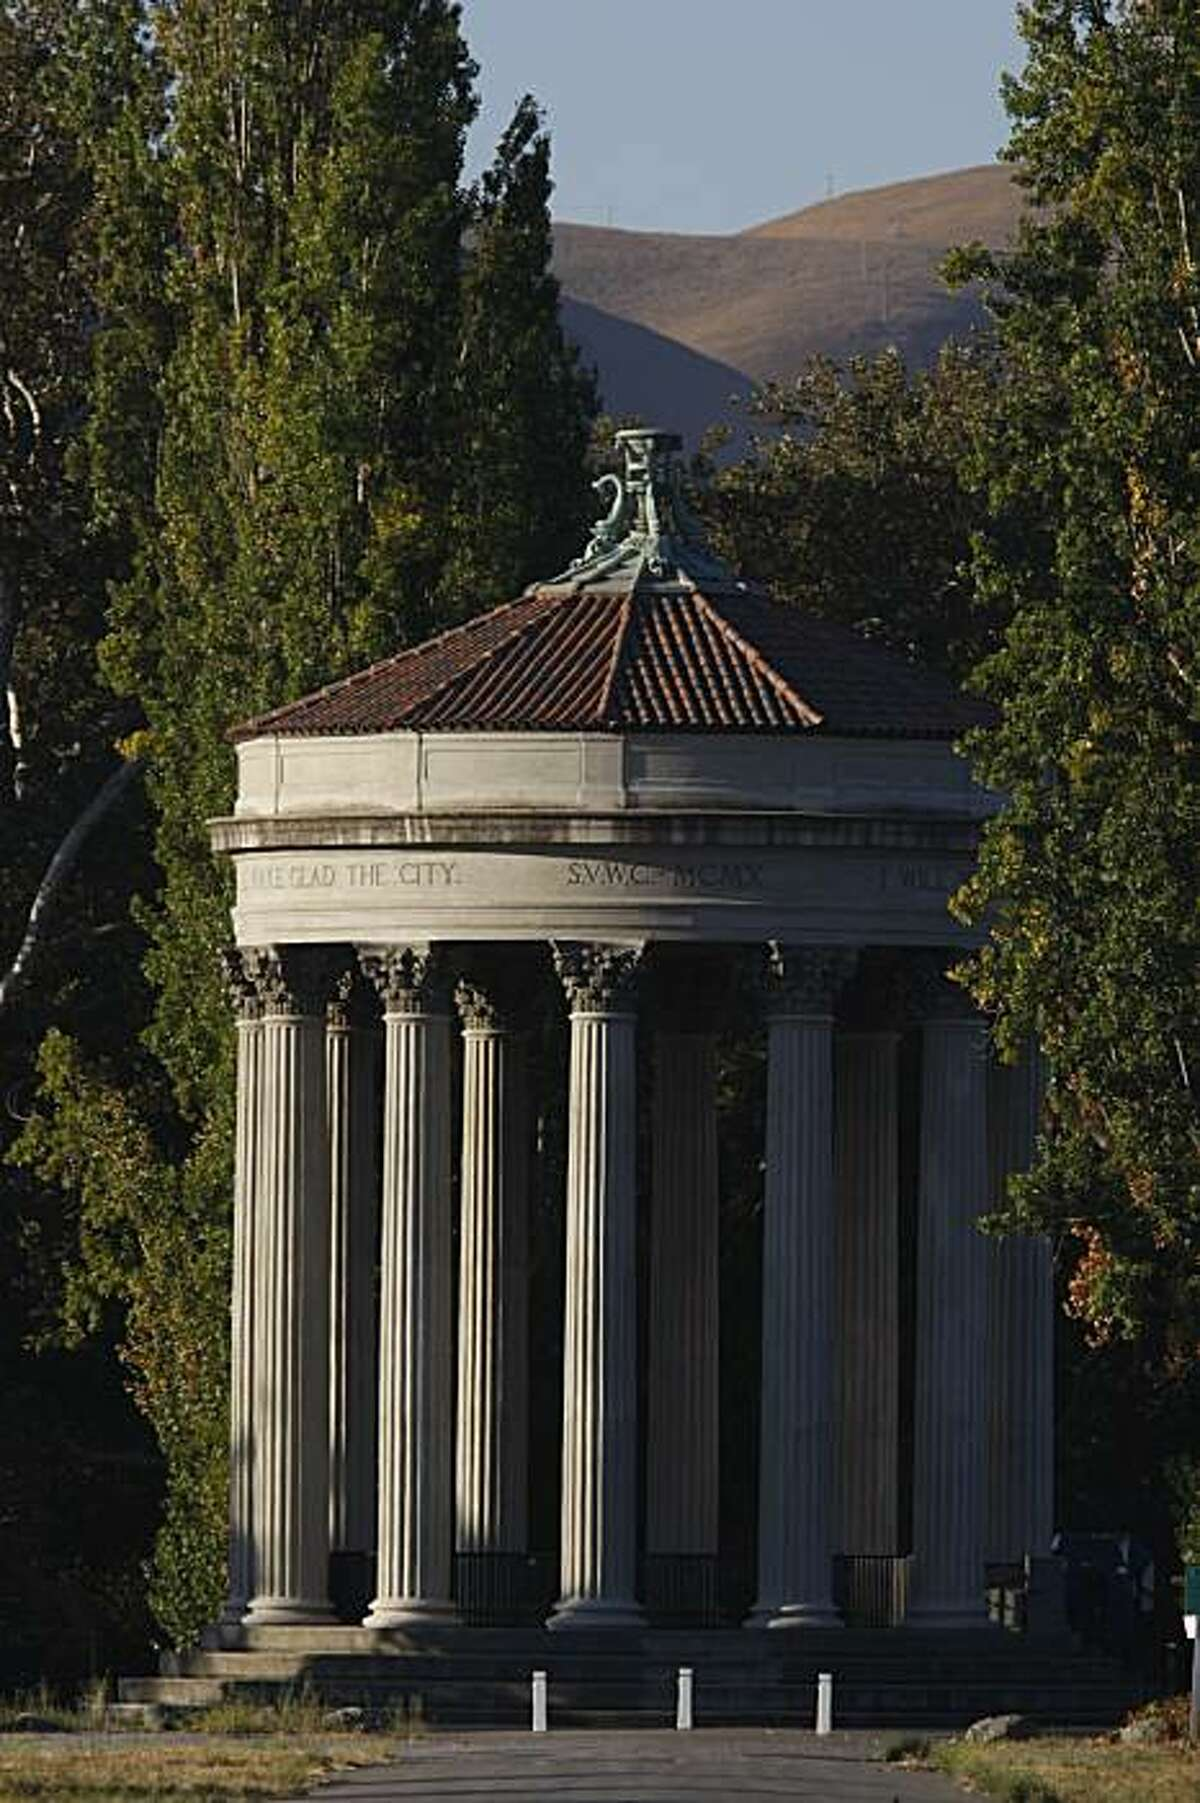 The Water Temple at the Sunol Water Temple Agricultural Park.